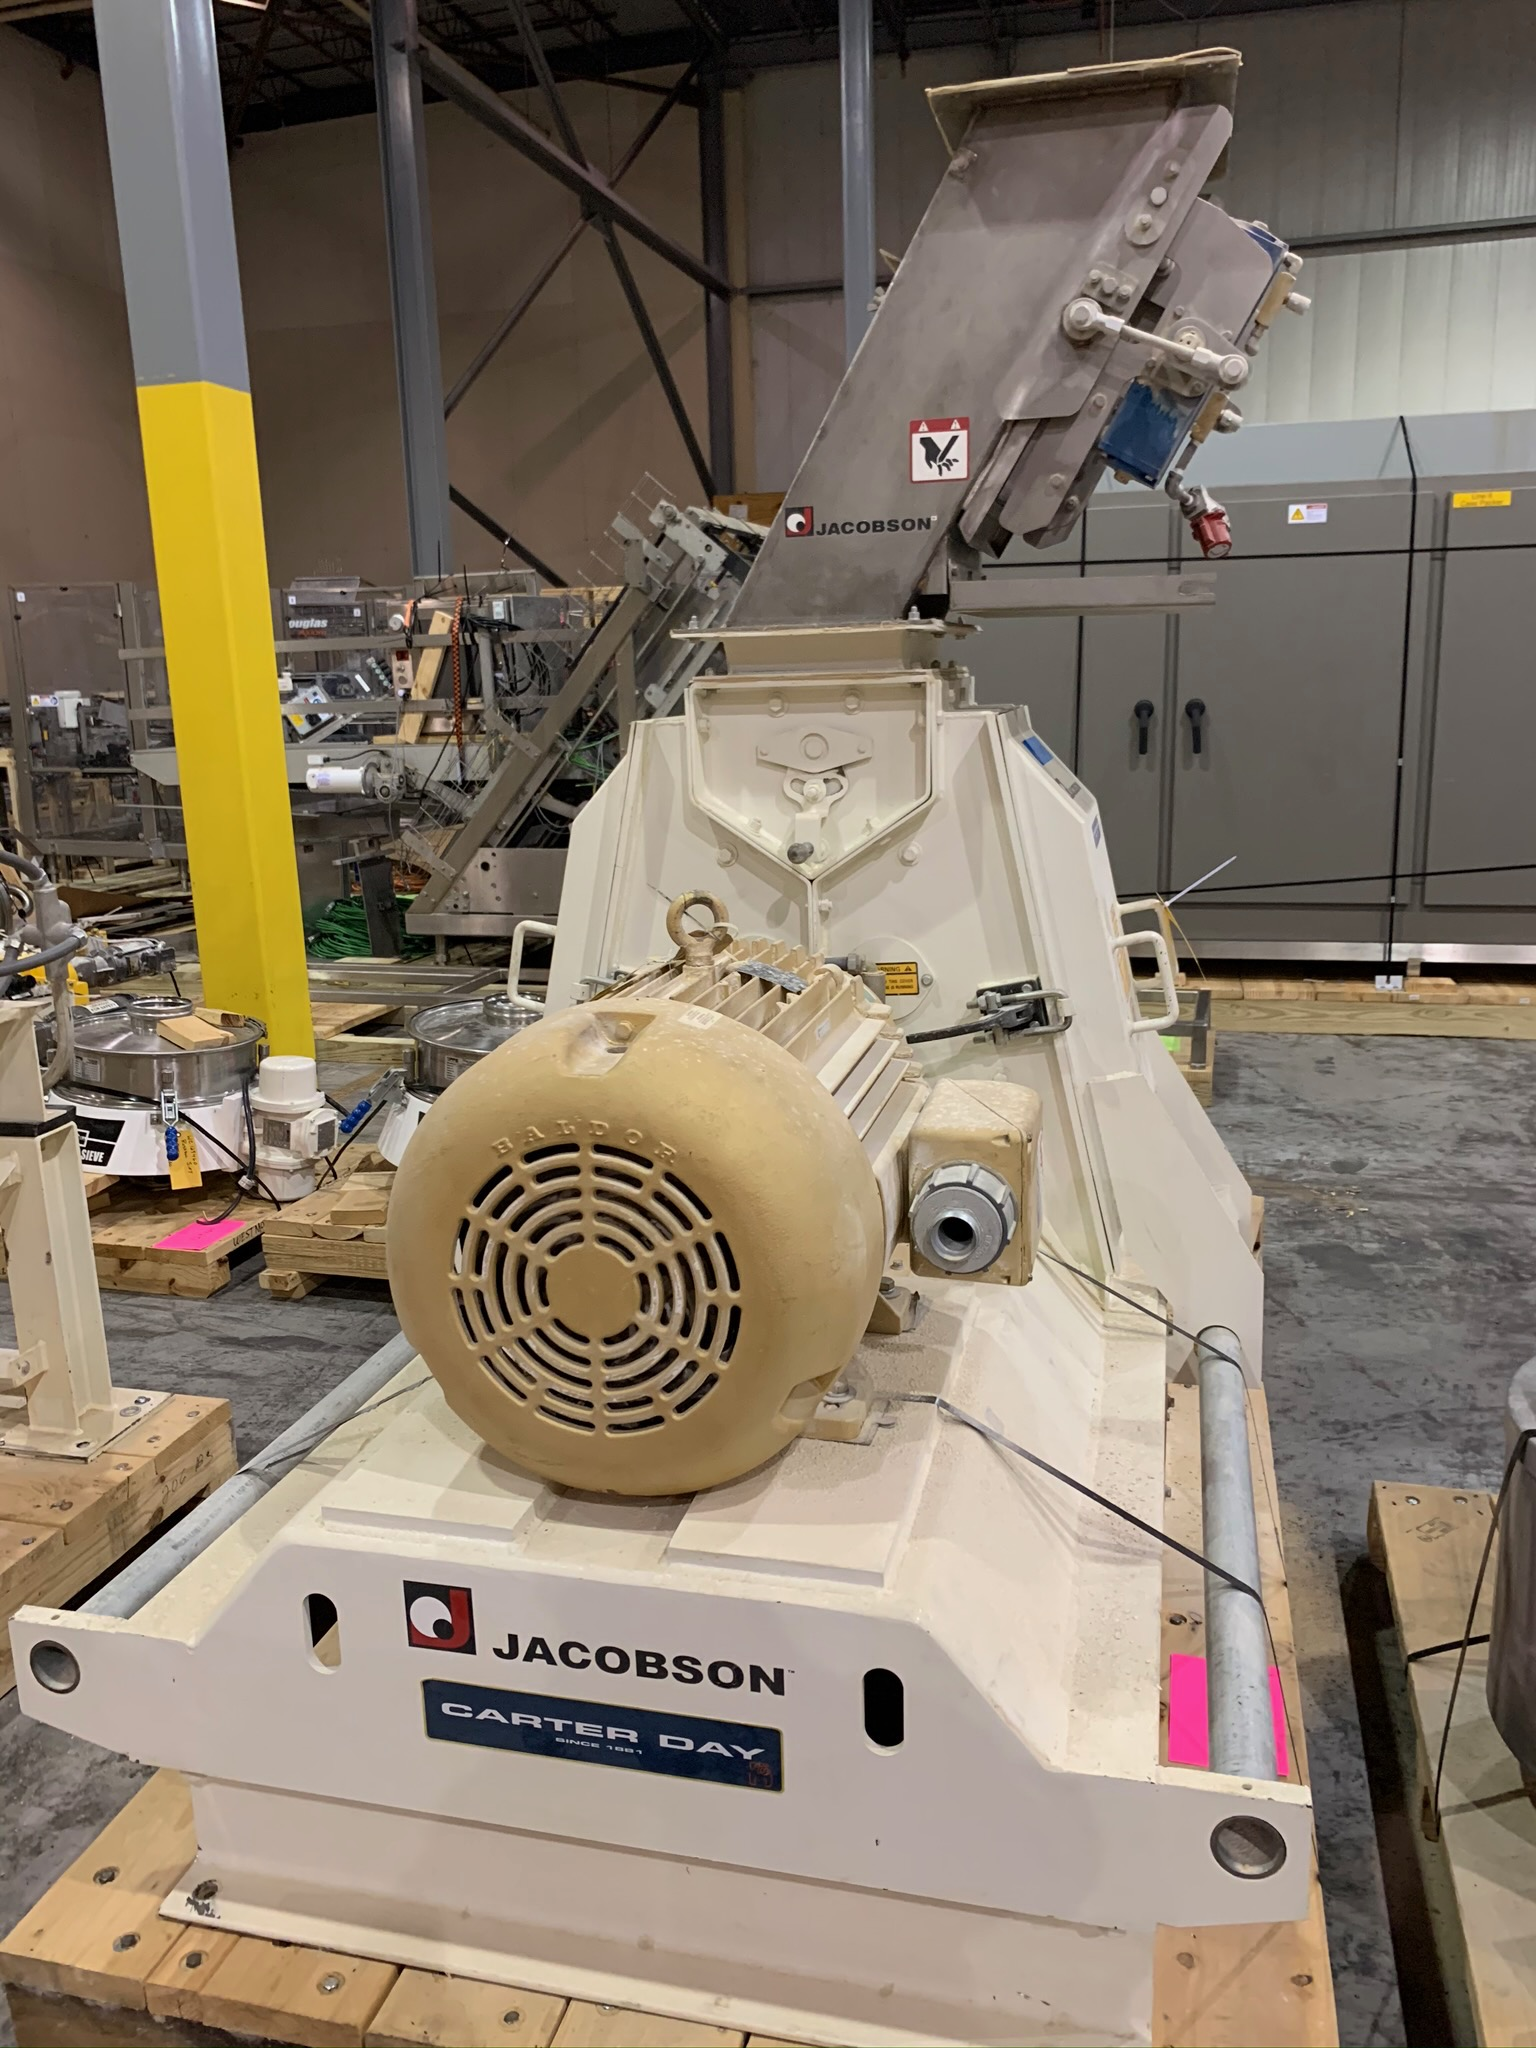 Lot 54 - Carter Day Jacobson Hammermill Style DLK1 S/N CDO14095 24313 XLT Hammermill 60 HP With Magnet (Riggi